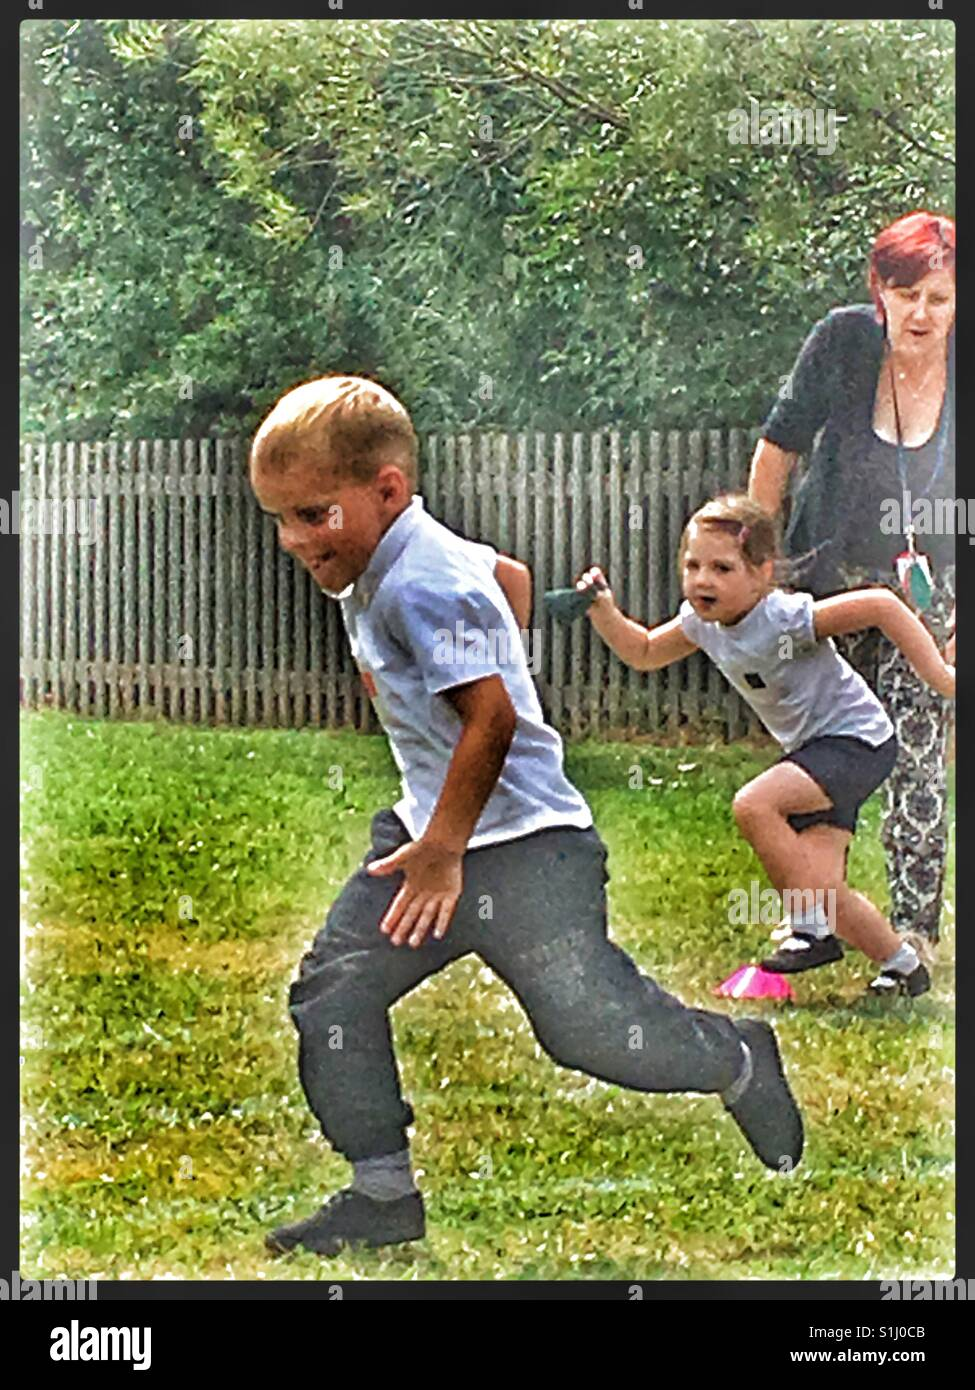 Bean Bag race at school Sports Day. - Stock Image